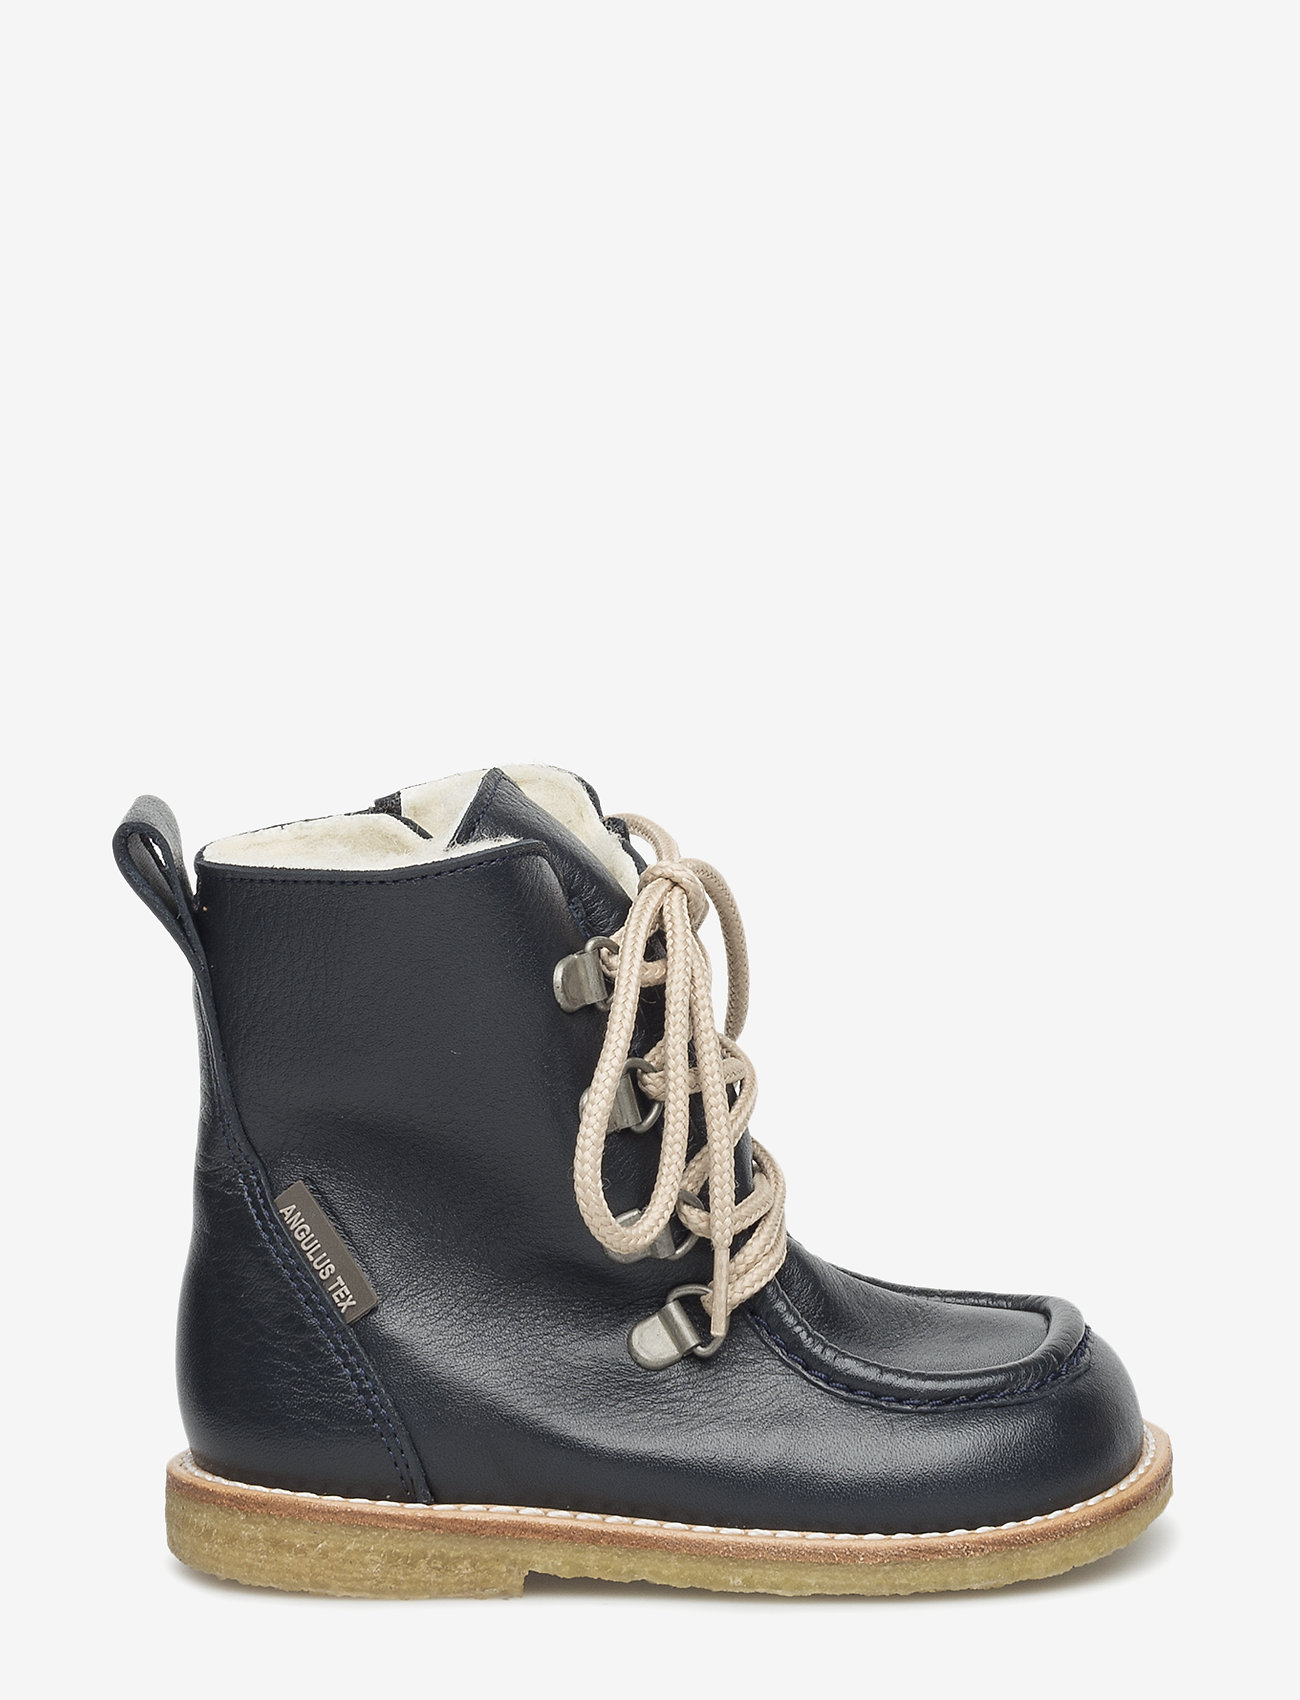 ANGULUS - 2380 - vinter boots - 1989/1530 navy/navy - 1